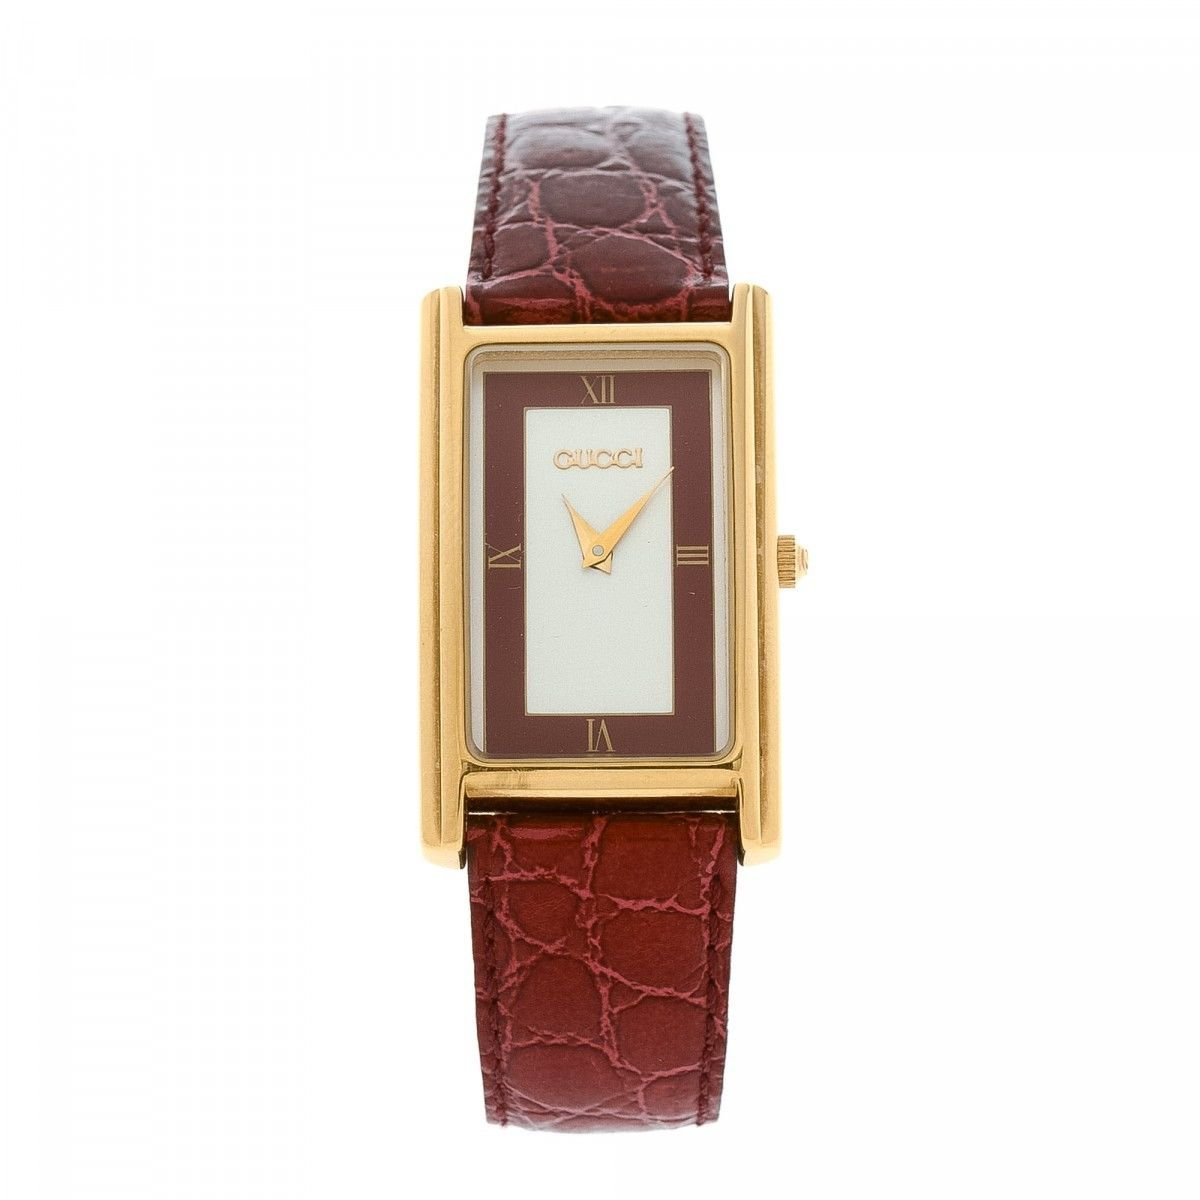 svql varina interchangeable with com watch red dp maroon womens salvatore ferragamo amazon watches band women s